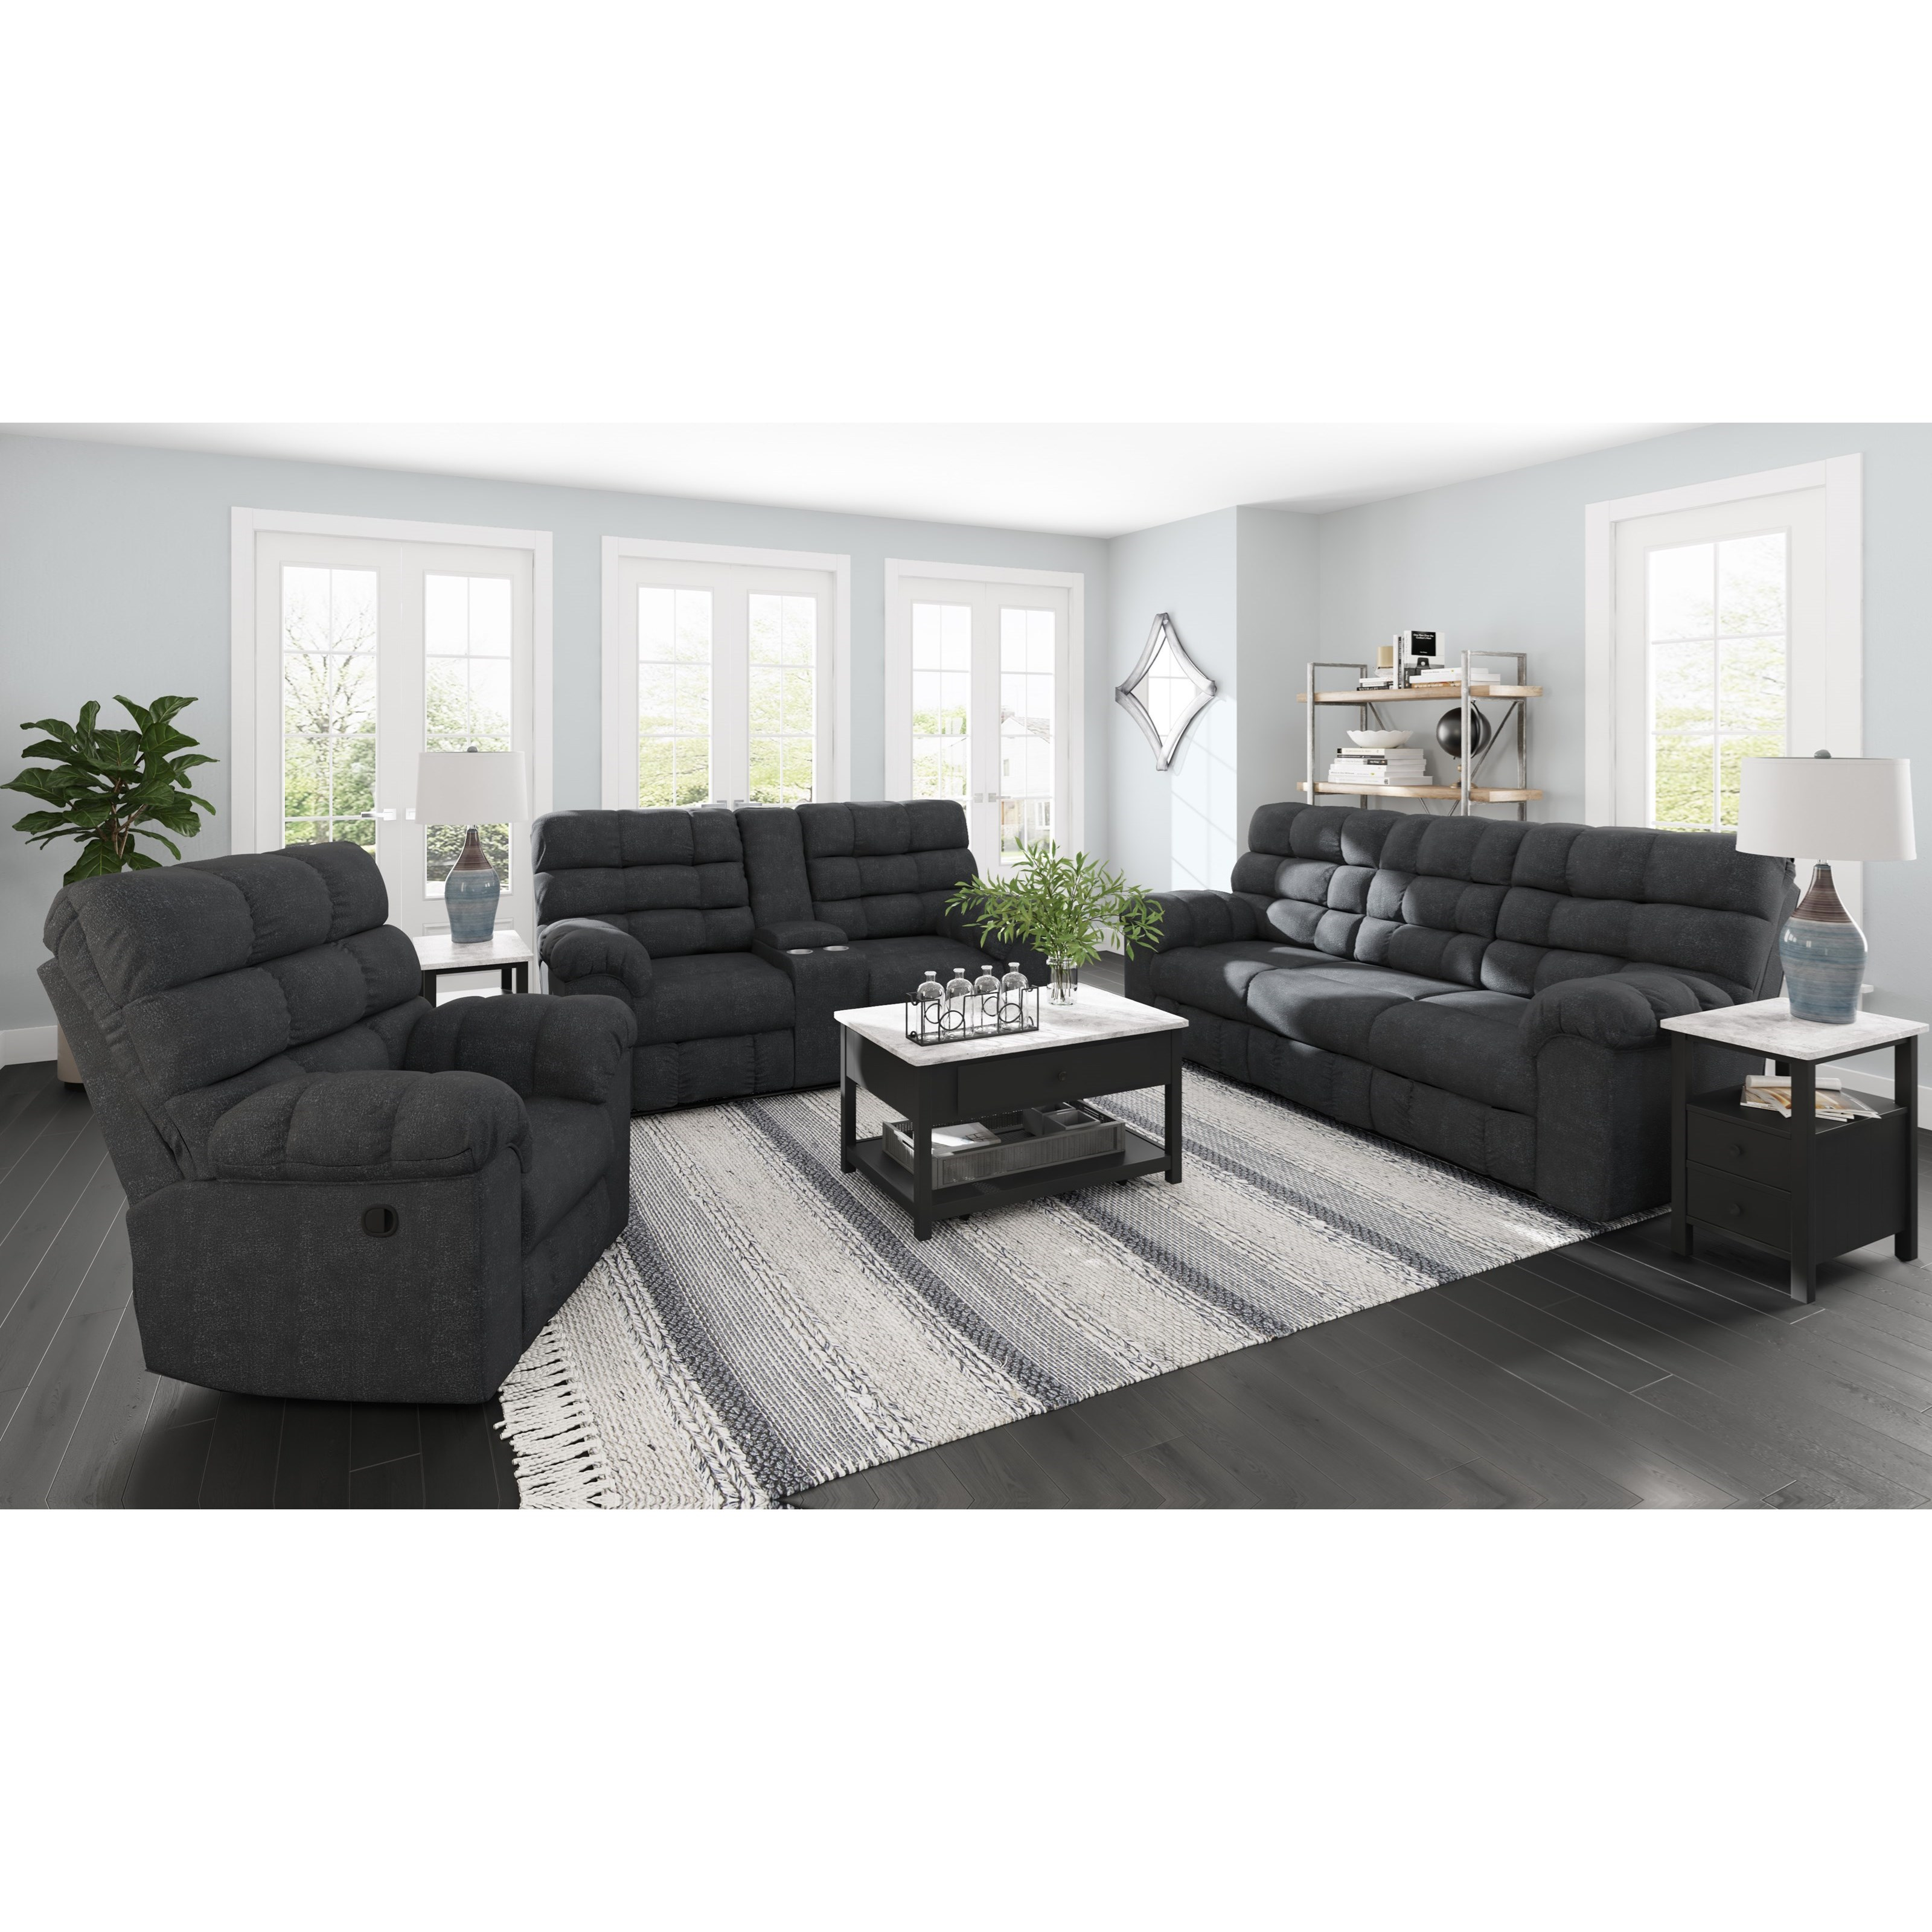 Wilhurst Reclining Living Room Group by Benchcraft at Virginia Furniture Market